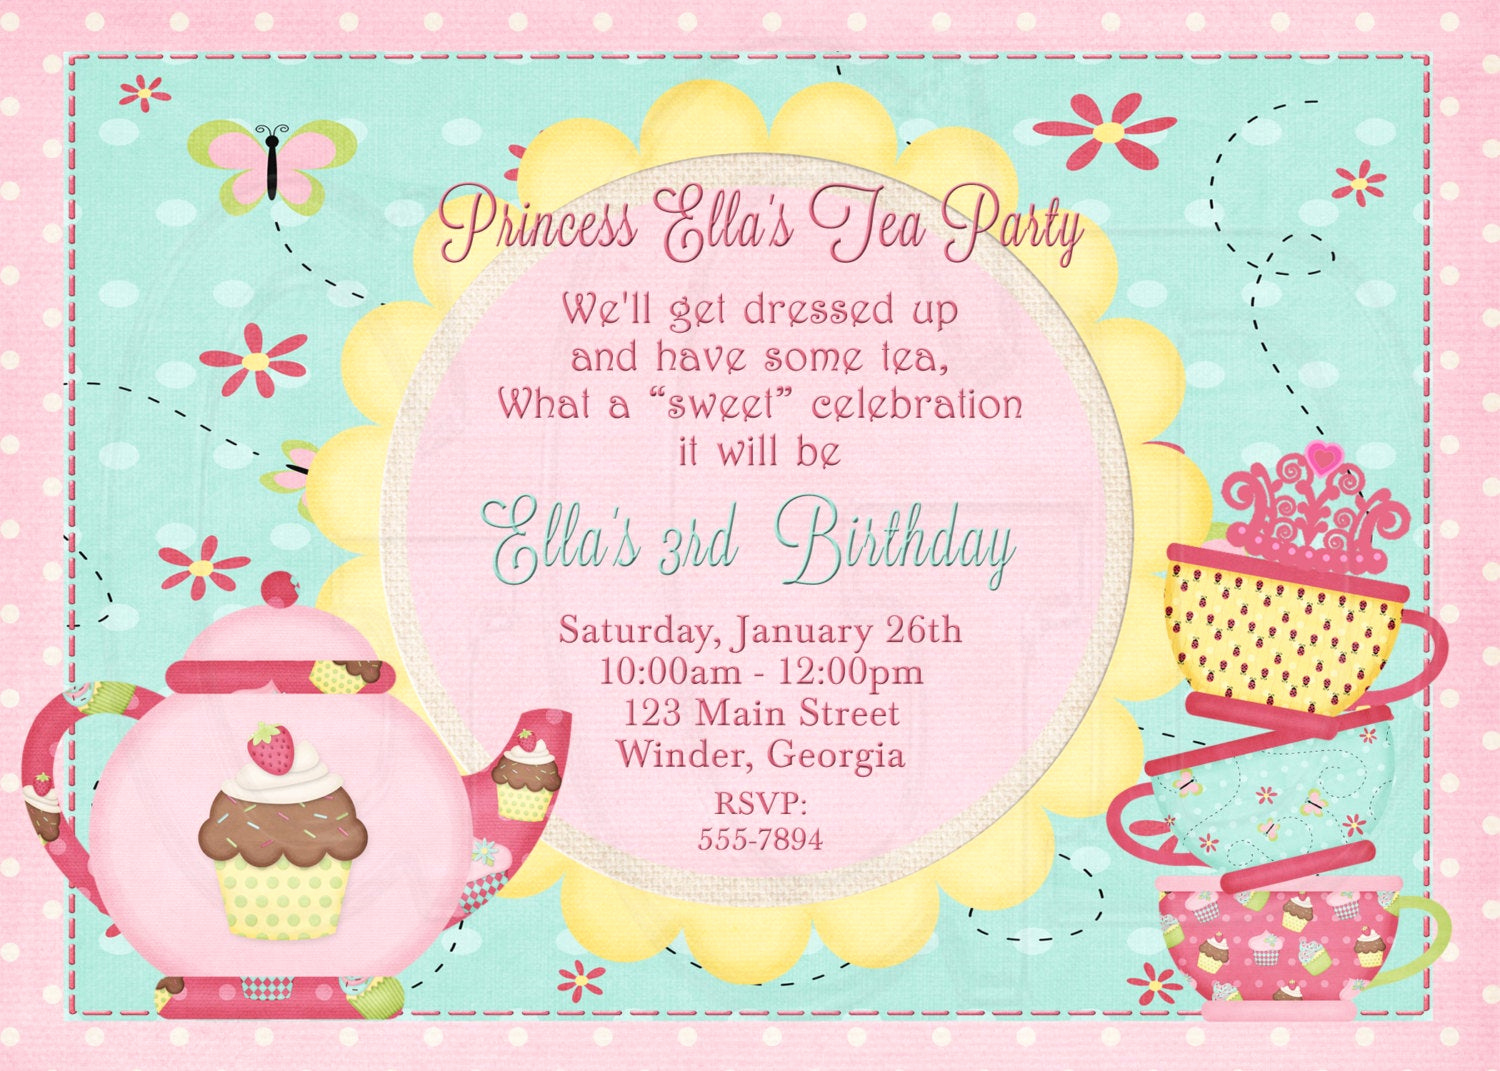 Tea Party Invitation Wording Beautiful Tea Party Invitation Birthday Dress Up Party Digital File